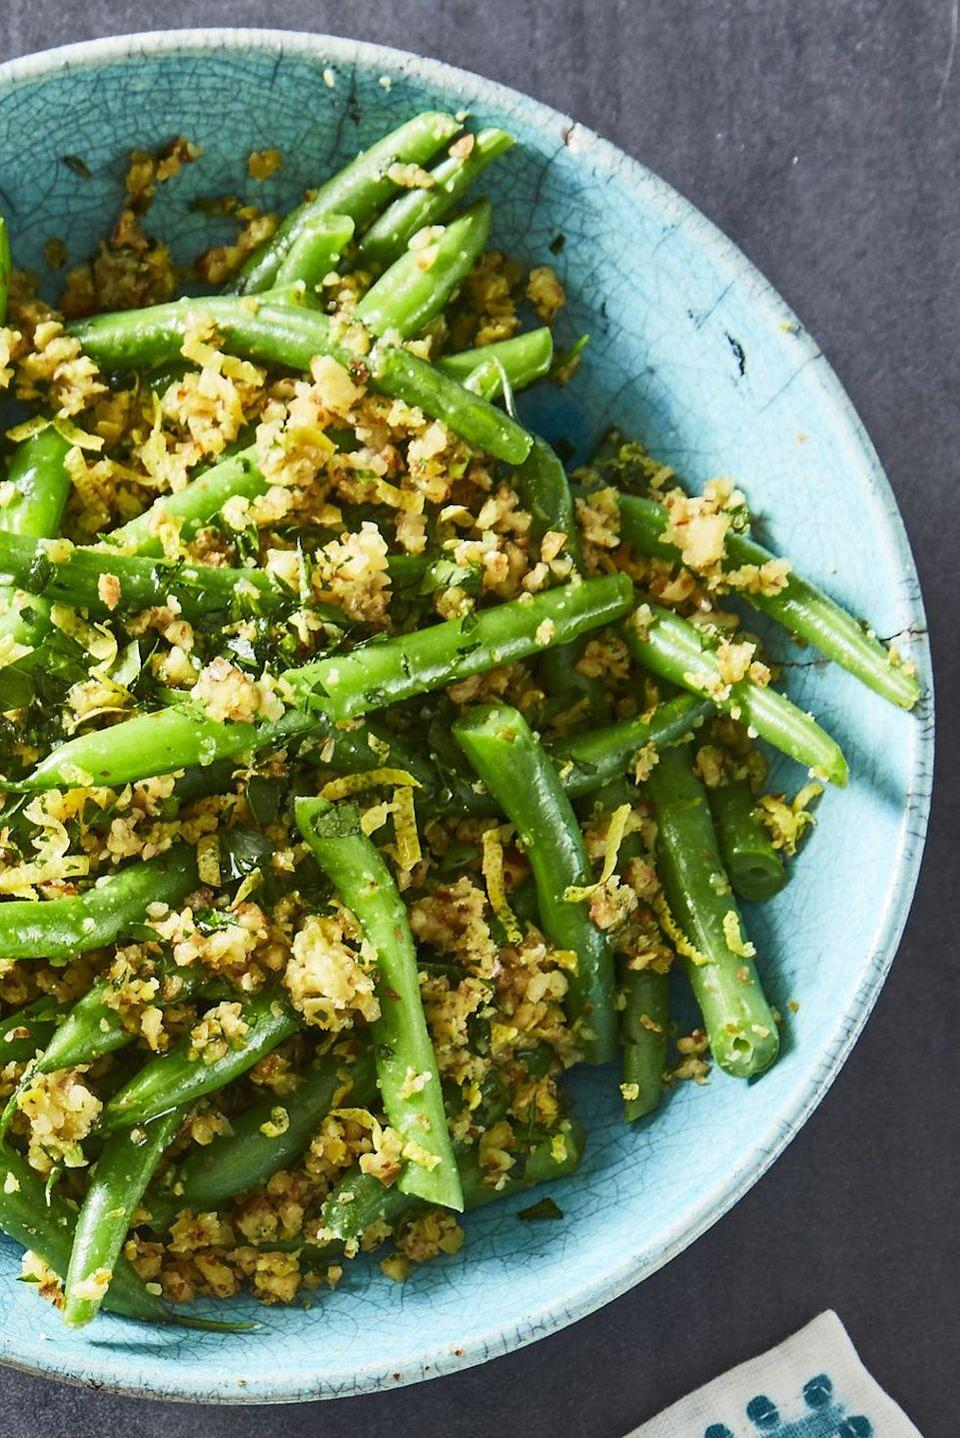 """<p>Turn simple green beans into something special with an almond, olive, parsley, and lemon zest tapenade.</p><p><em><a href=""""https://www.goodhousekeeping.com/food-recipes/healthy/a44181/green-beans-olive-almond-tapenade-recipe/"""" rel=""""nofollow noopener"""" target=""""_blank"""" data-ylk=""""slk:Get the recipe for Green Beans with Olive-Almond Tapenade »"""" class=""""link rapid-noclick-resp"""">Get the recipe for Green Beans with Olive-Almond Tapenade »</a></em></p>"""